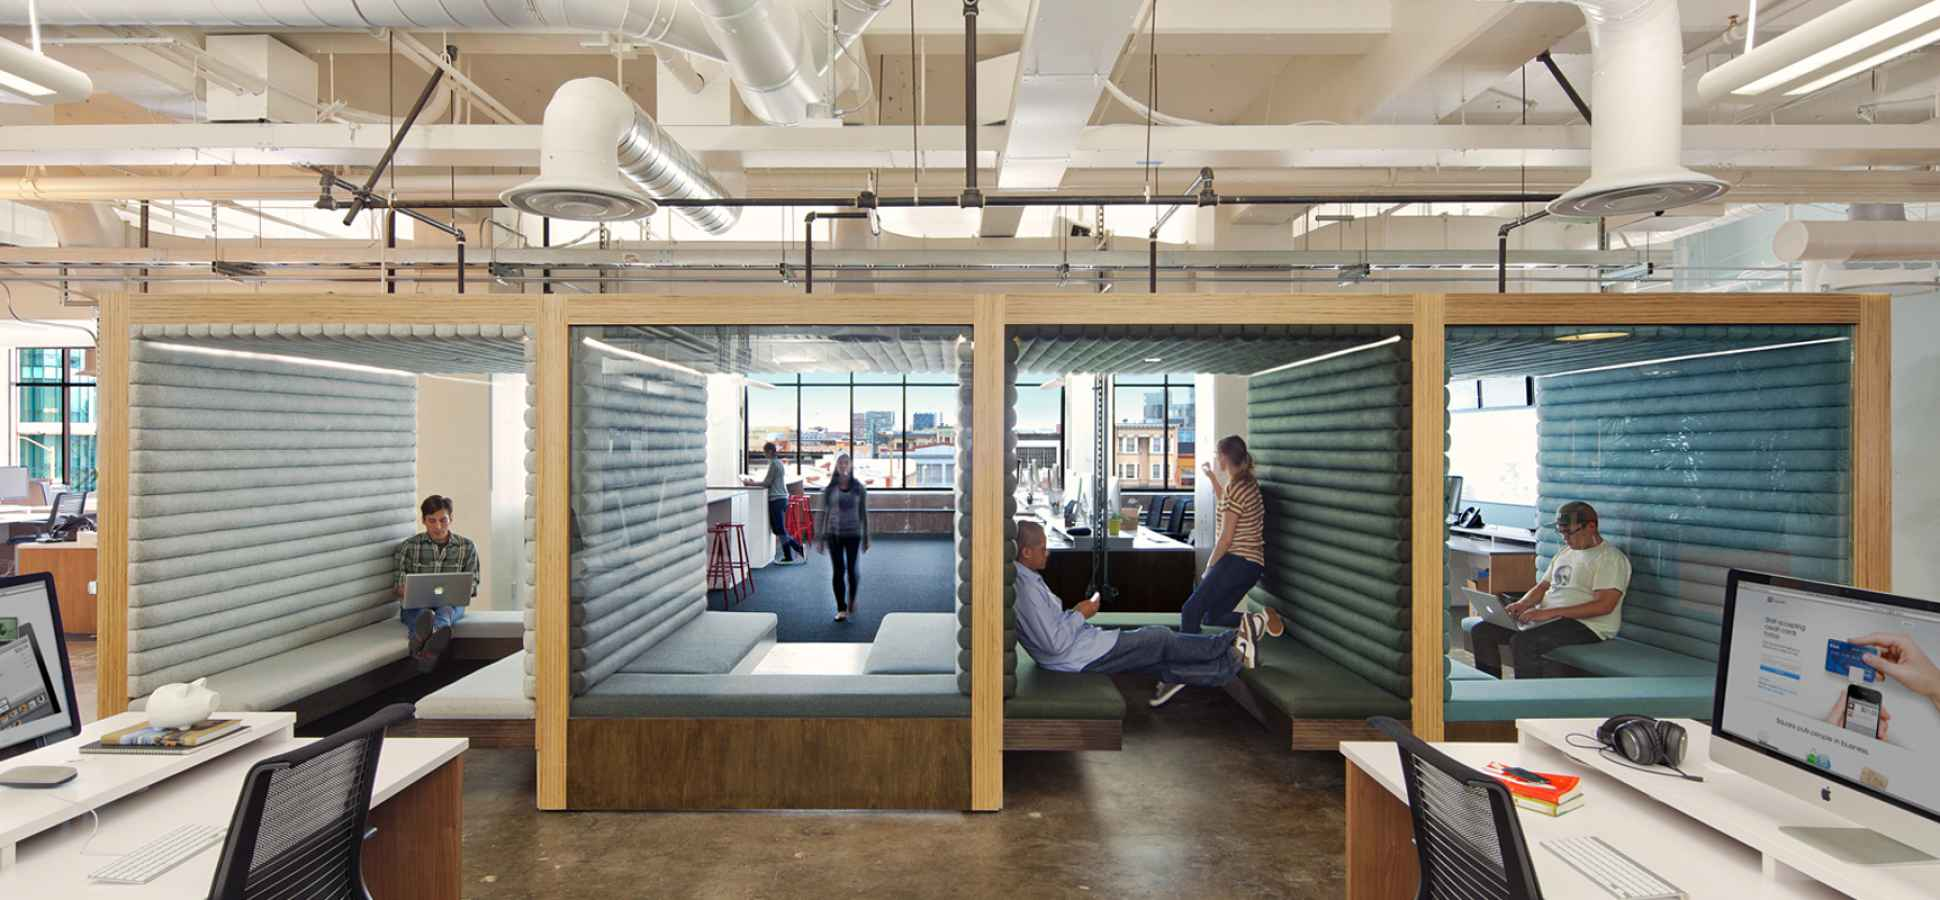 Excellent 7 Creative Office Designs To Get You Inspired For 2016 Inc Com Largest Home Design Picture Inspirations Pitcheantrous